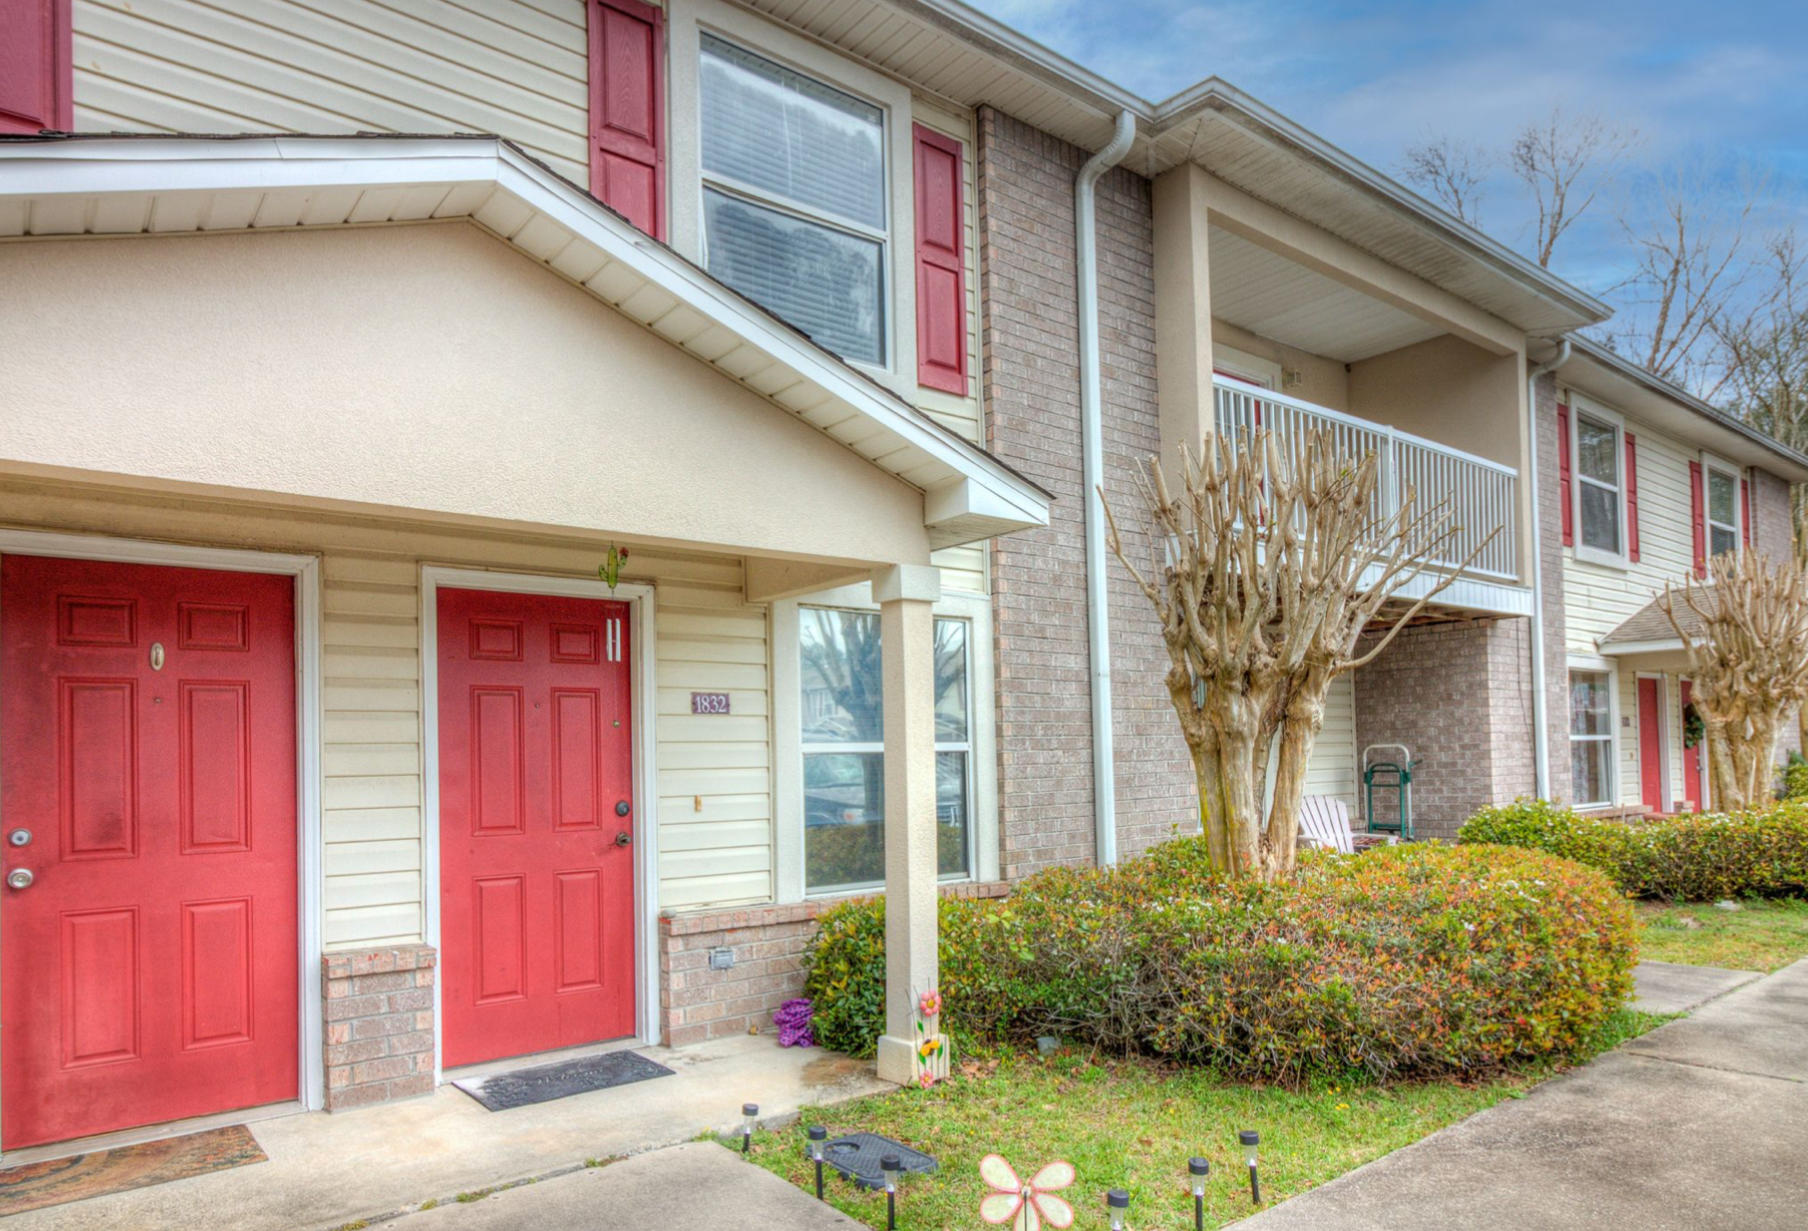 A 2 Bedroom 2 Bedroom Shay Lin T/h Townhome